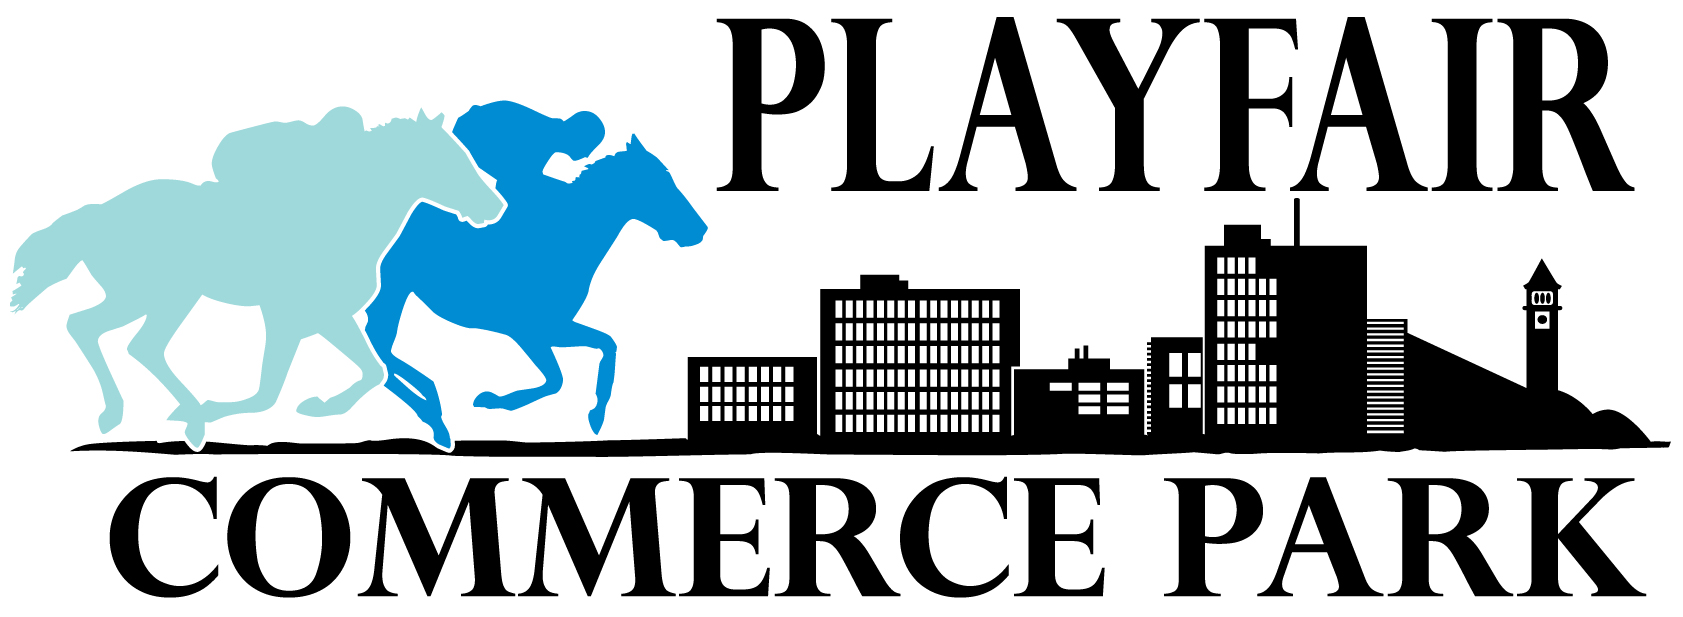 14-11 PlayfairLogo-01